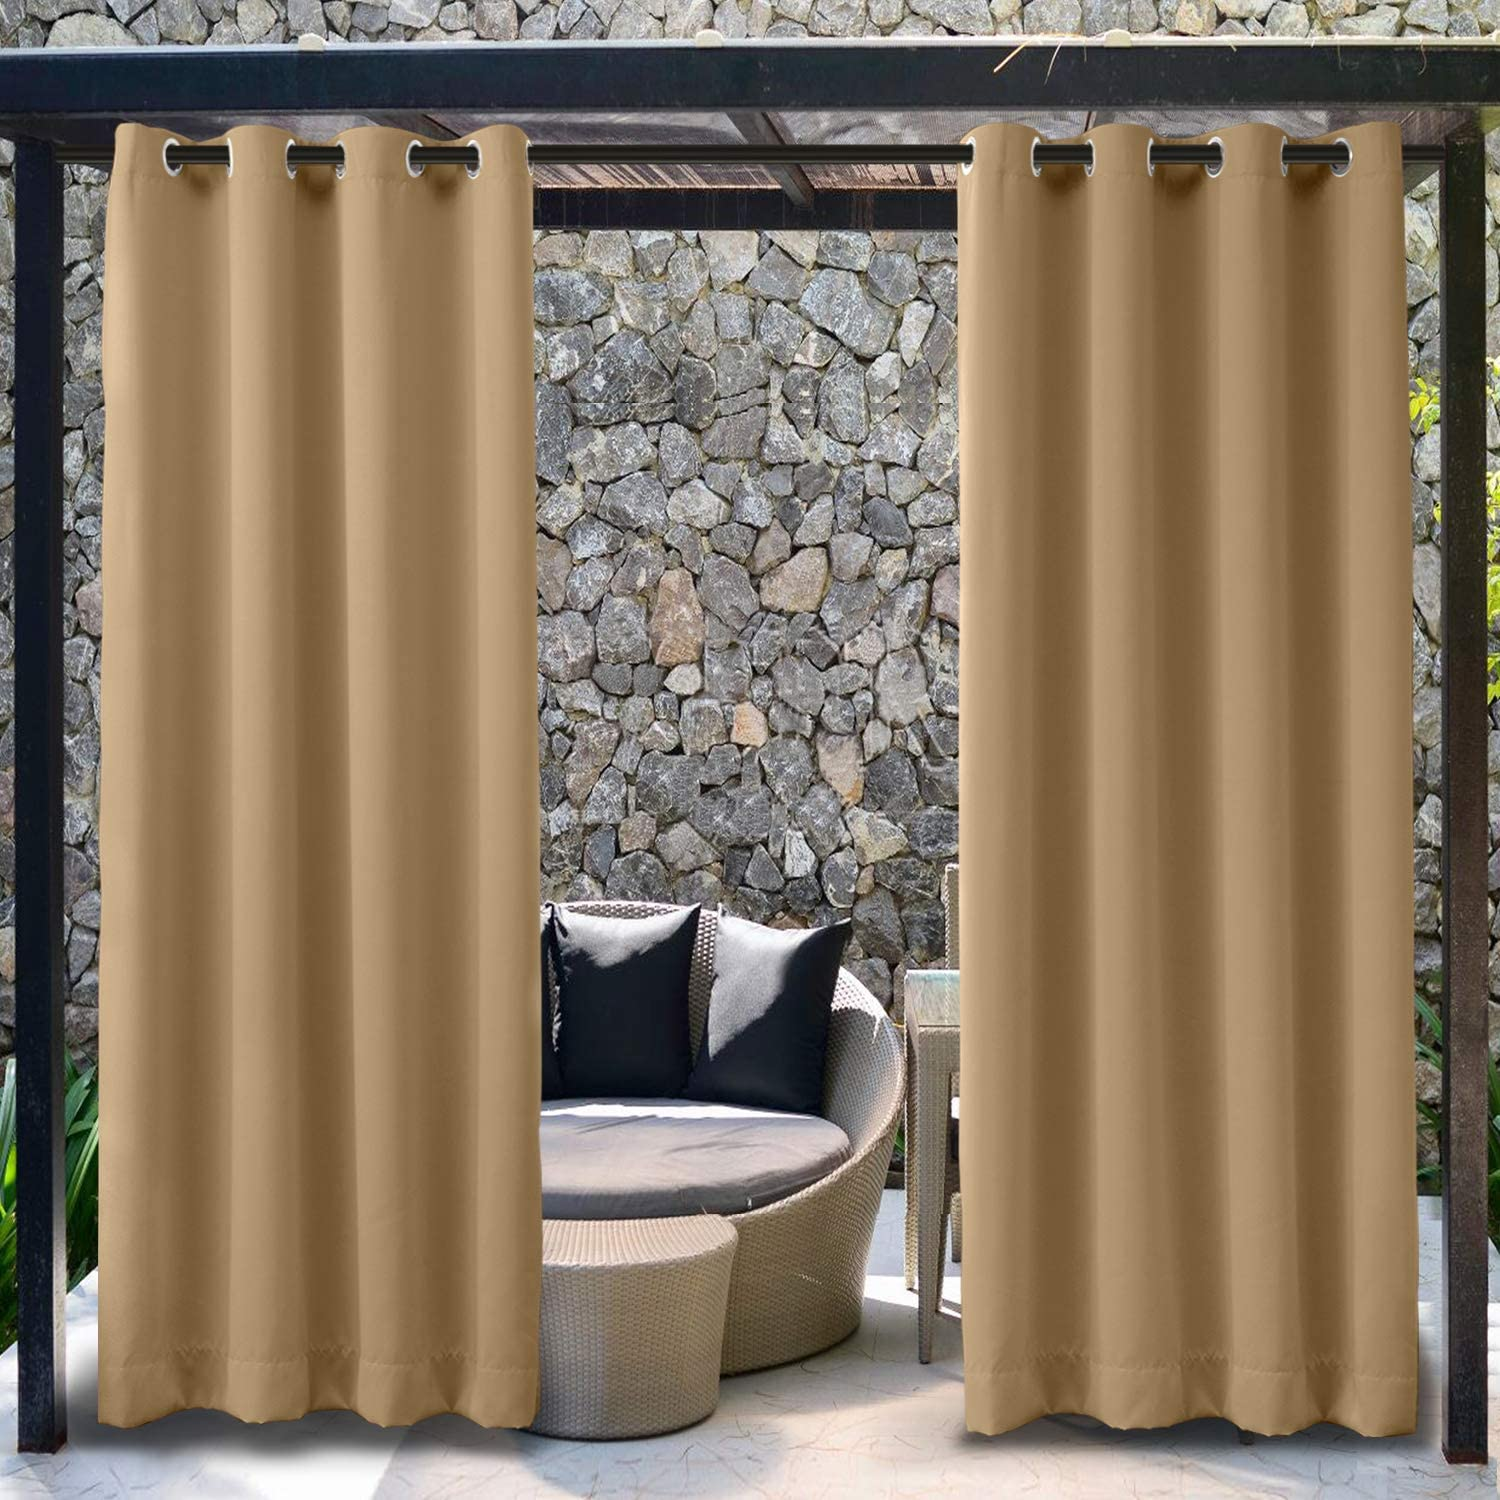 TWOPAGES Outdoor Rustproof Grommet Top Curtain for Pergola, Waterproof Blackout Privacy Curtain Thermal Insulated Drape (1 Panel, 84 Inches Wide by 96 Inches Long)